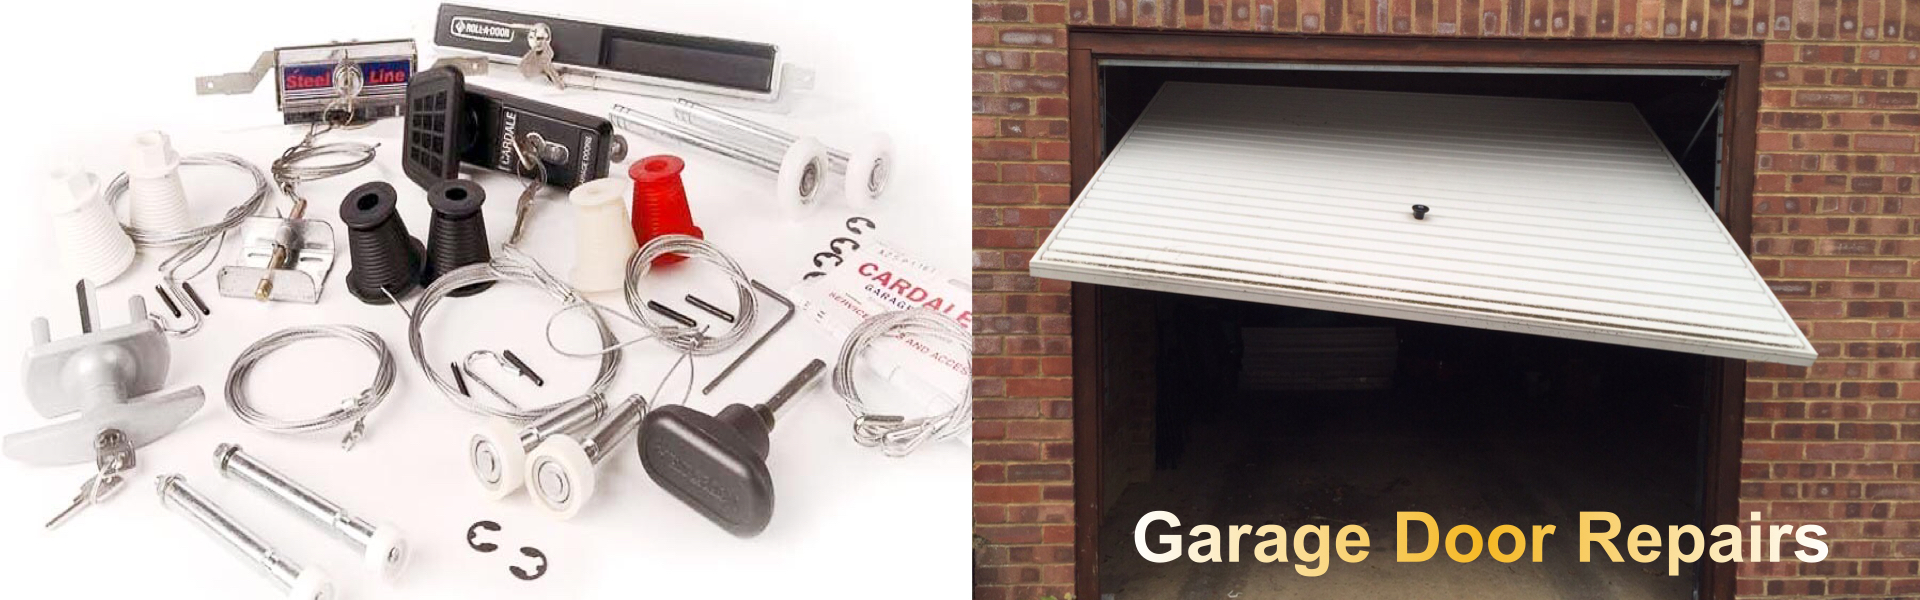 Garage Door Repairs Repair Or Replace Ltd